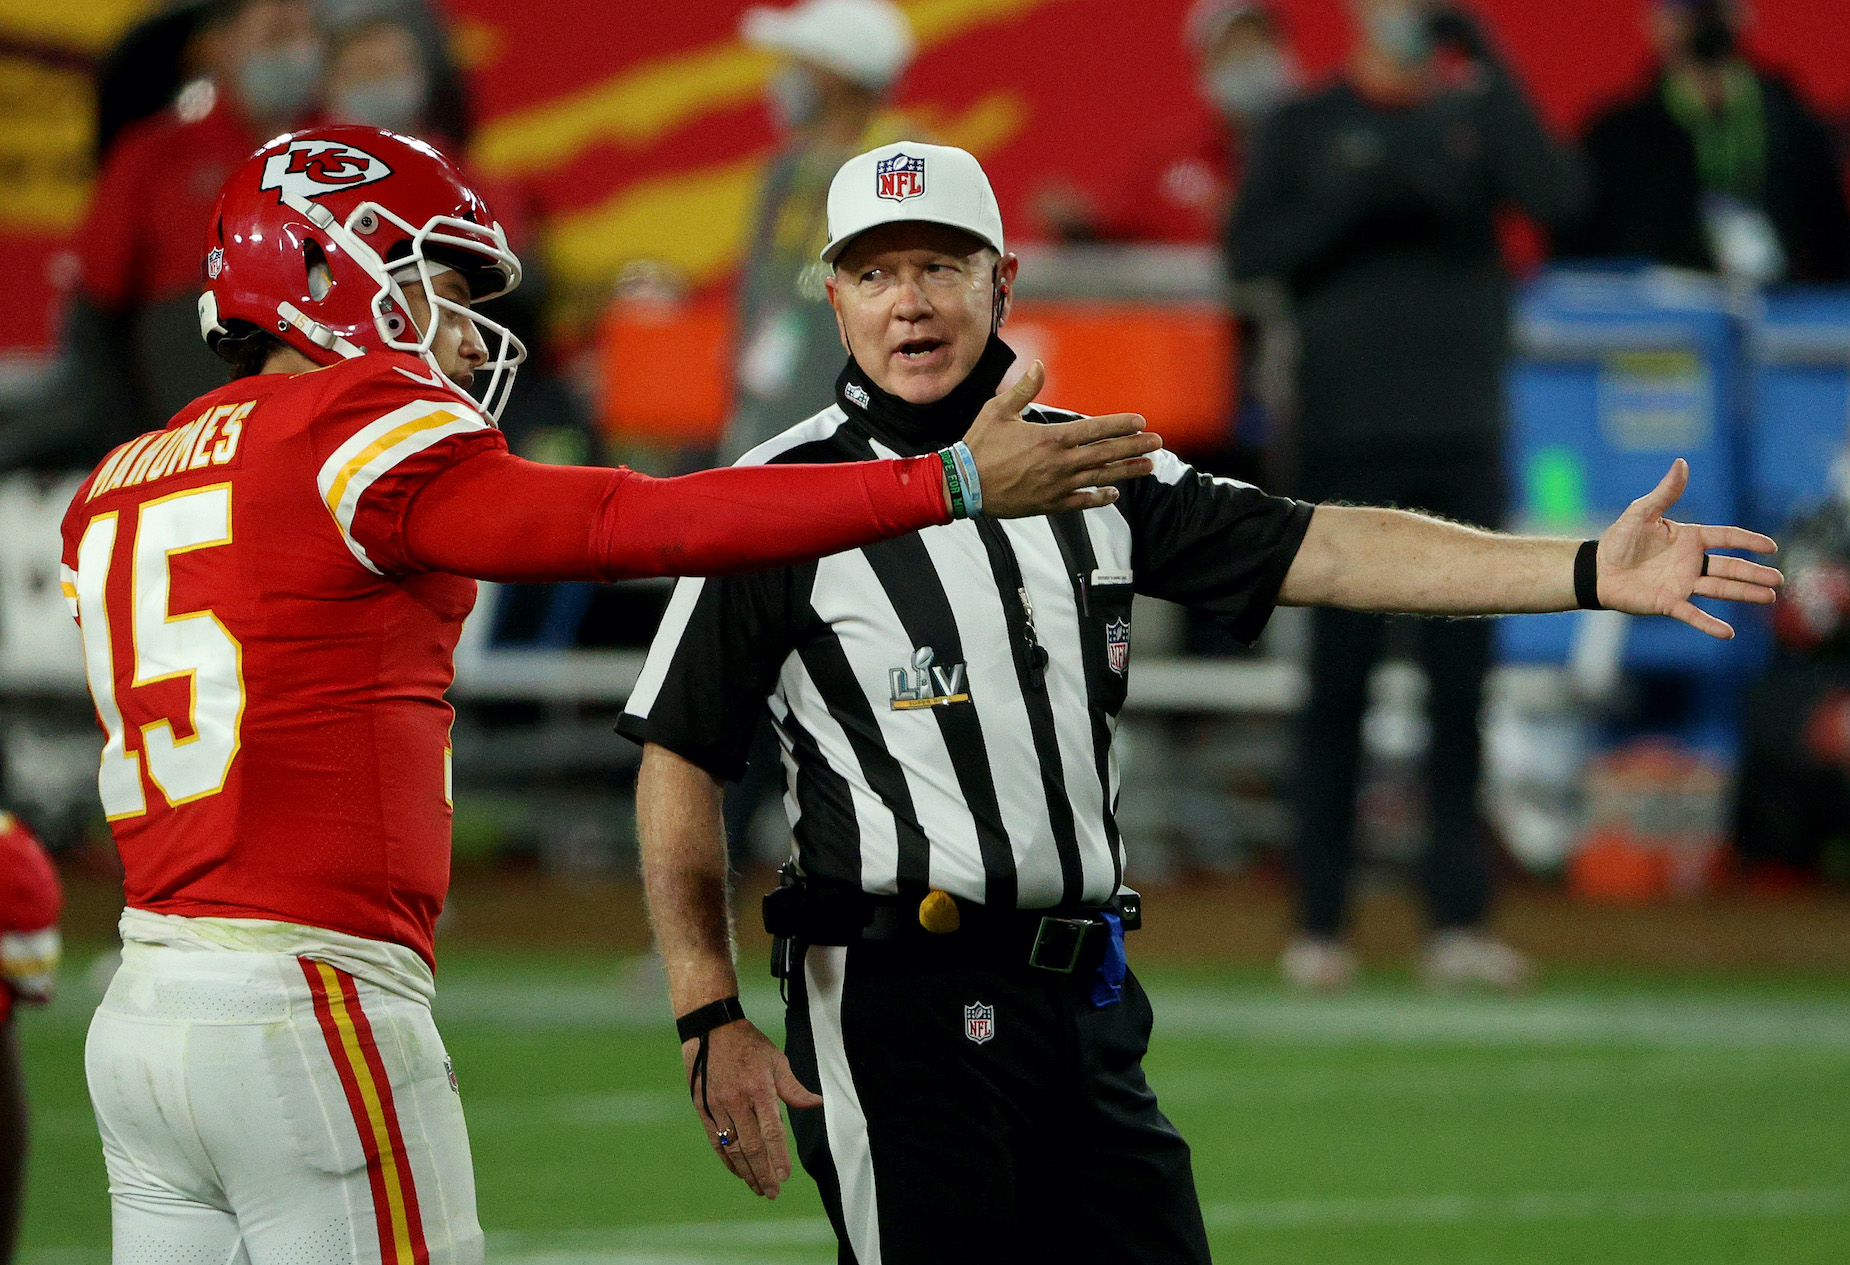 Kansas City Chiefs fans will feel that the referees made some questionable calls in Super Bowl 55. An NFL rules analyst agrees.